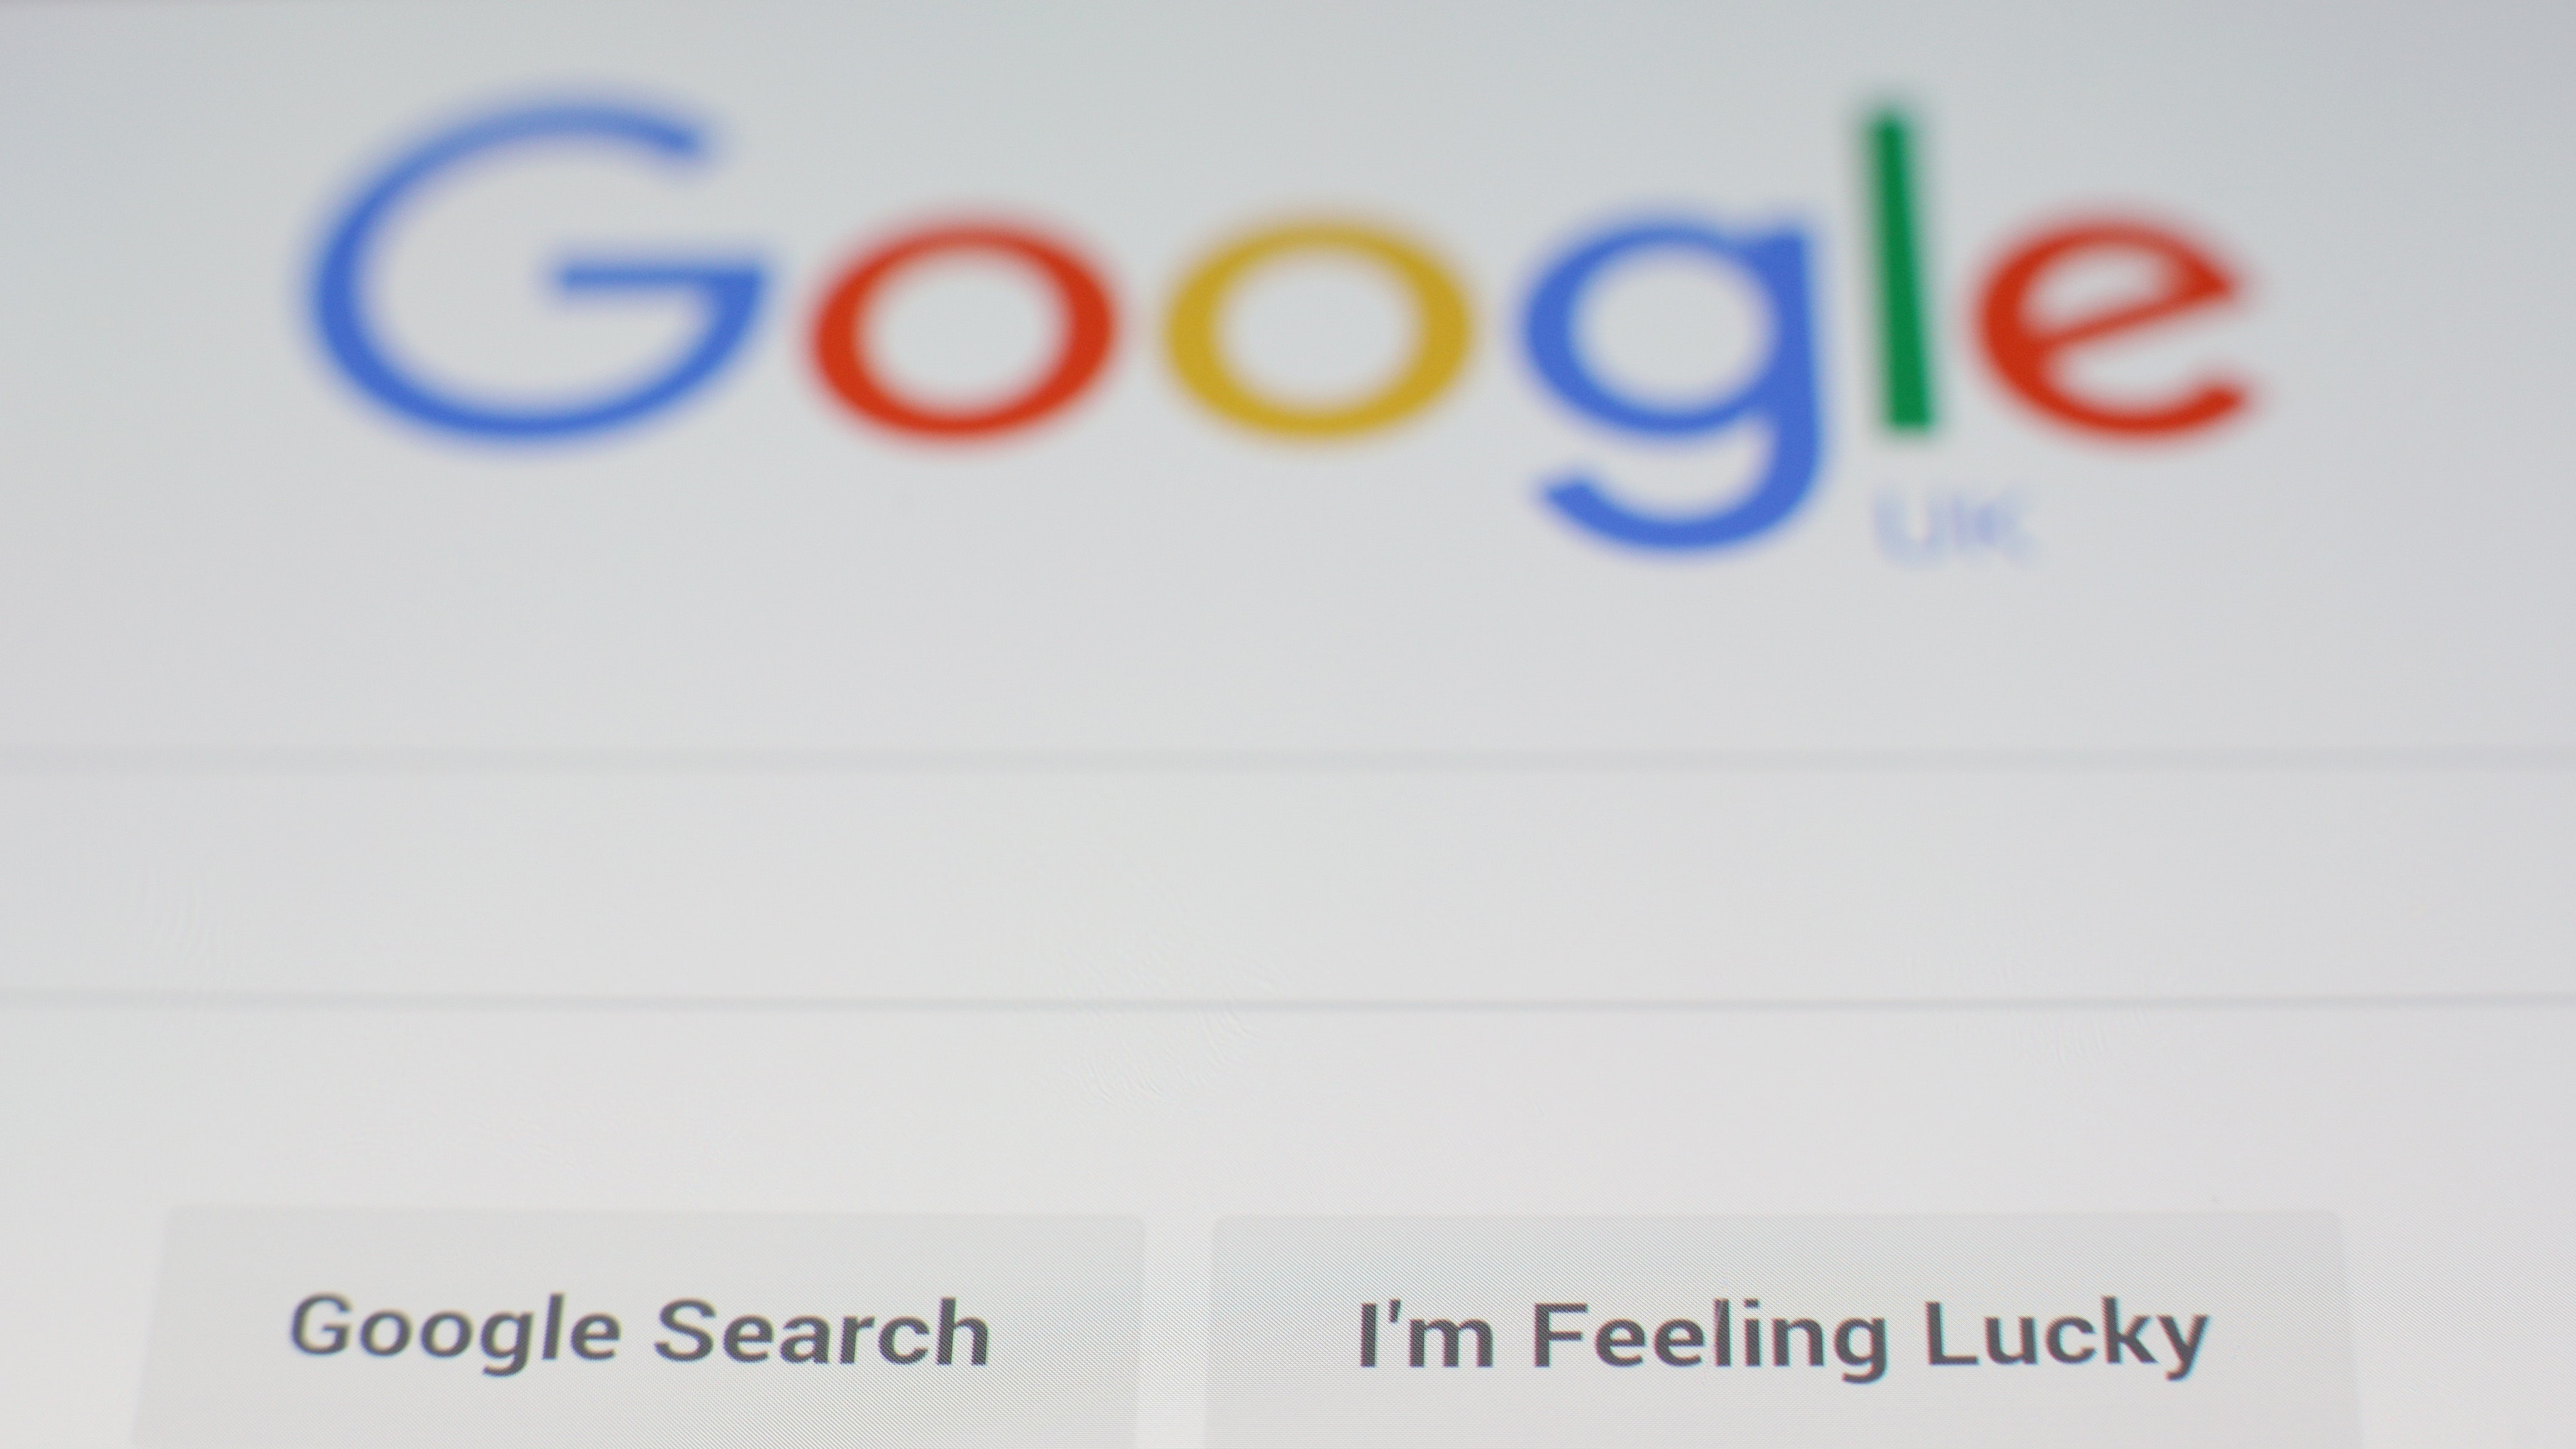 Google Search Reveals Updates As Part Of 20th Anniversary